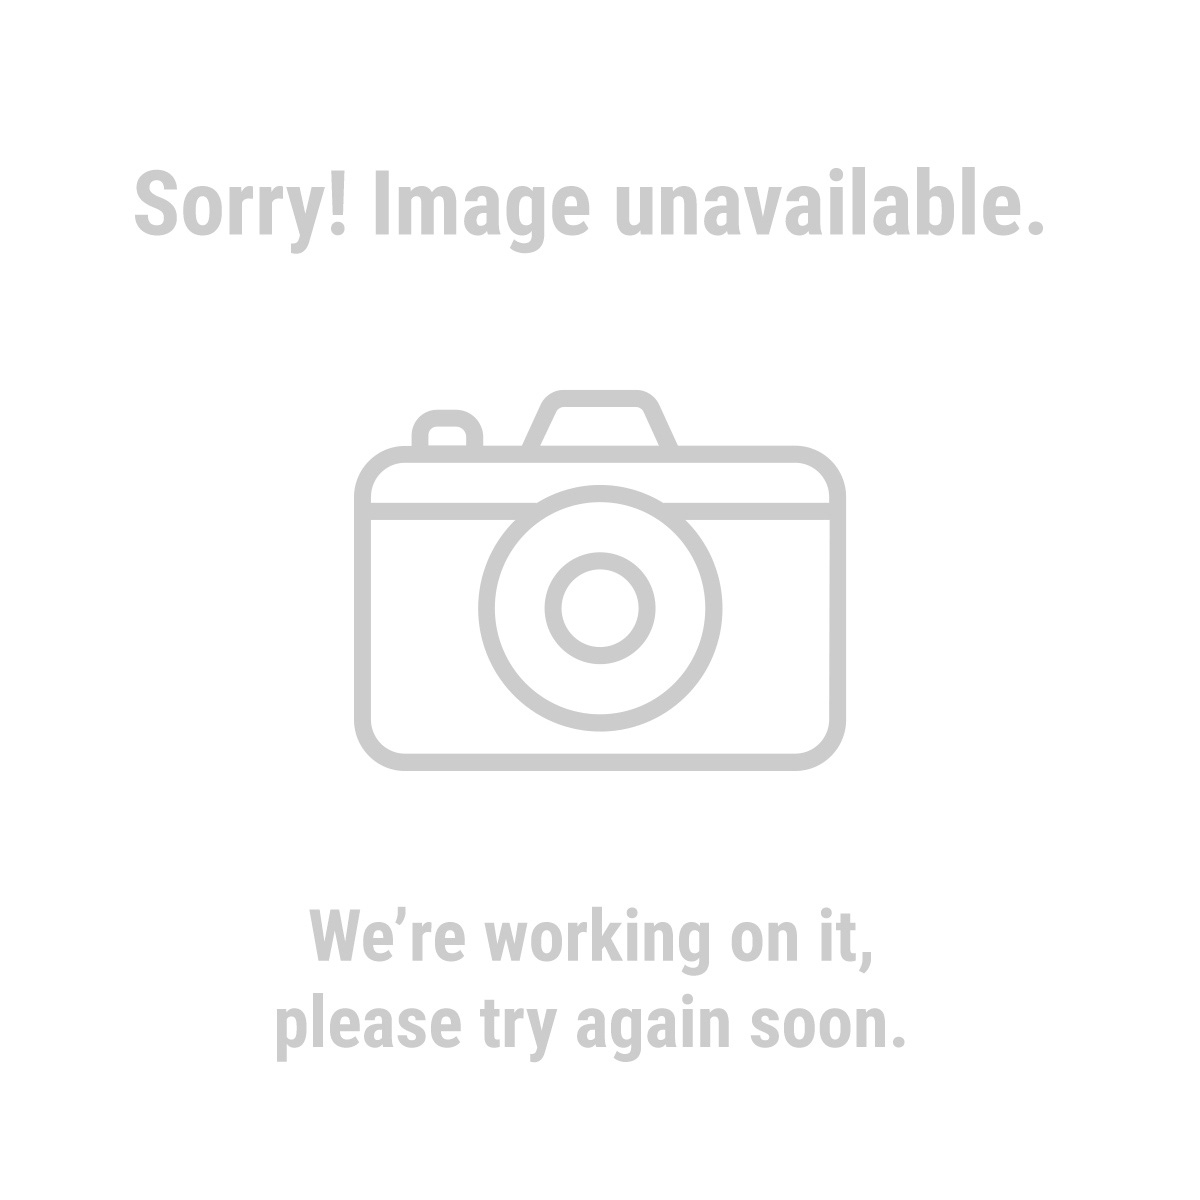 Lifetime Carbide 90311 Pack of 6 Coarse Grade Aluminum Oxide Sanding Sponges with Beveled Edge